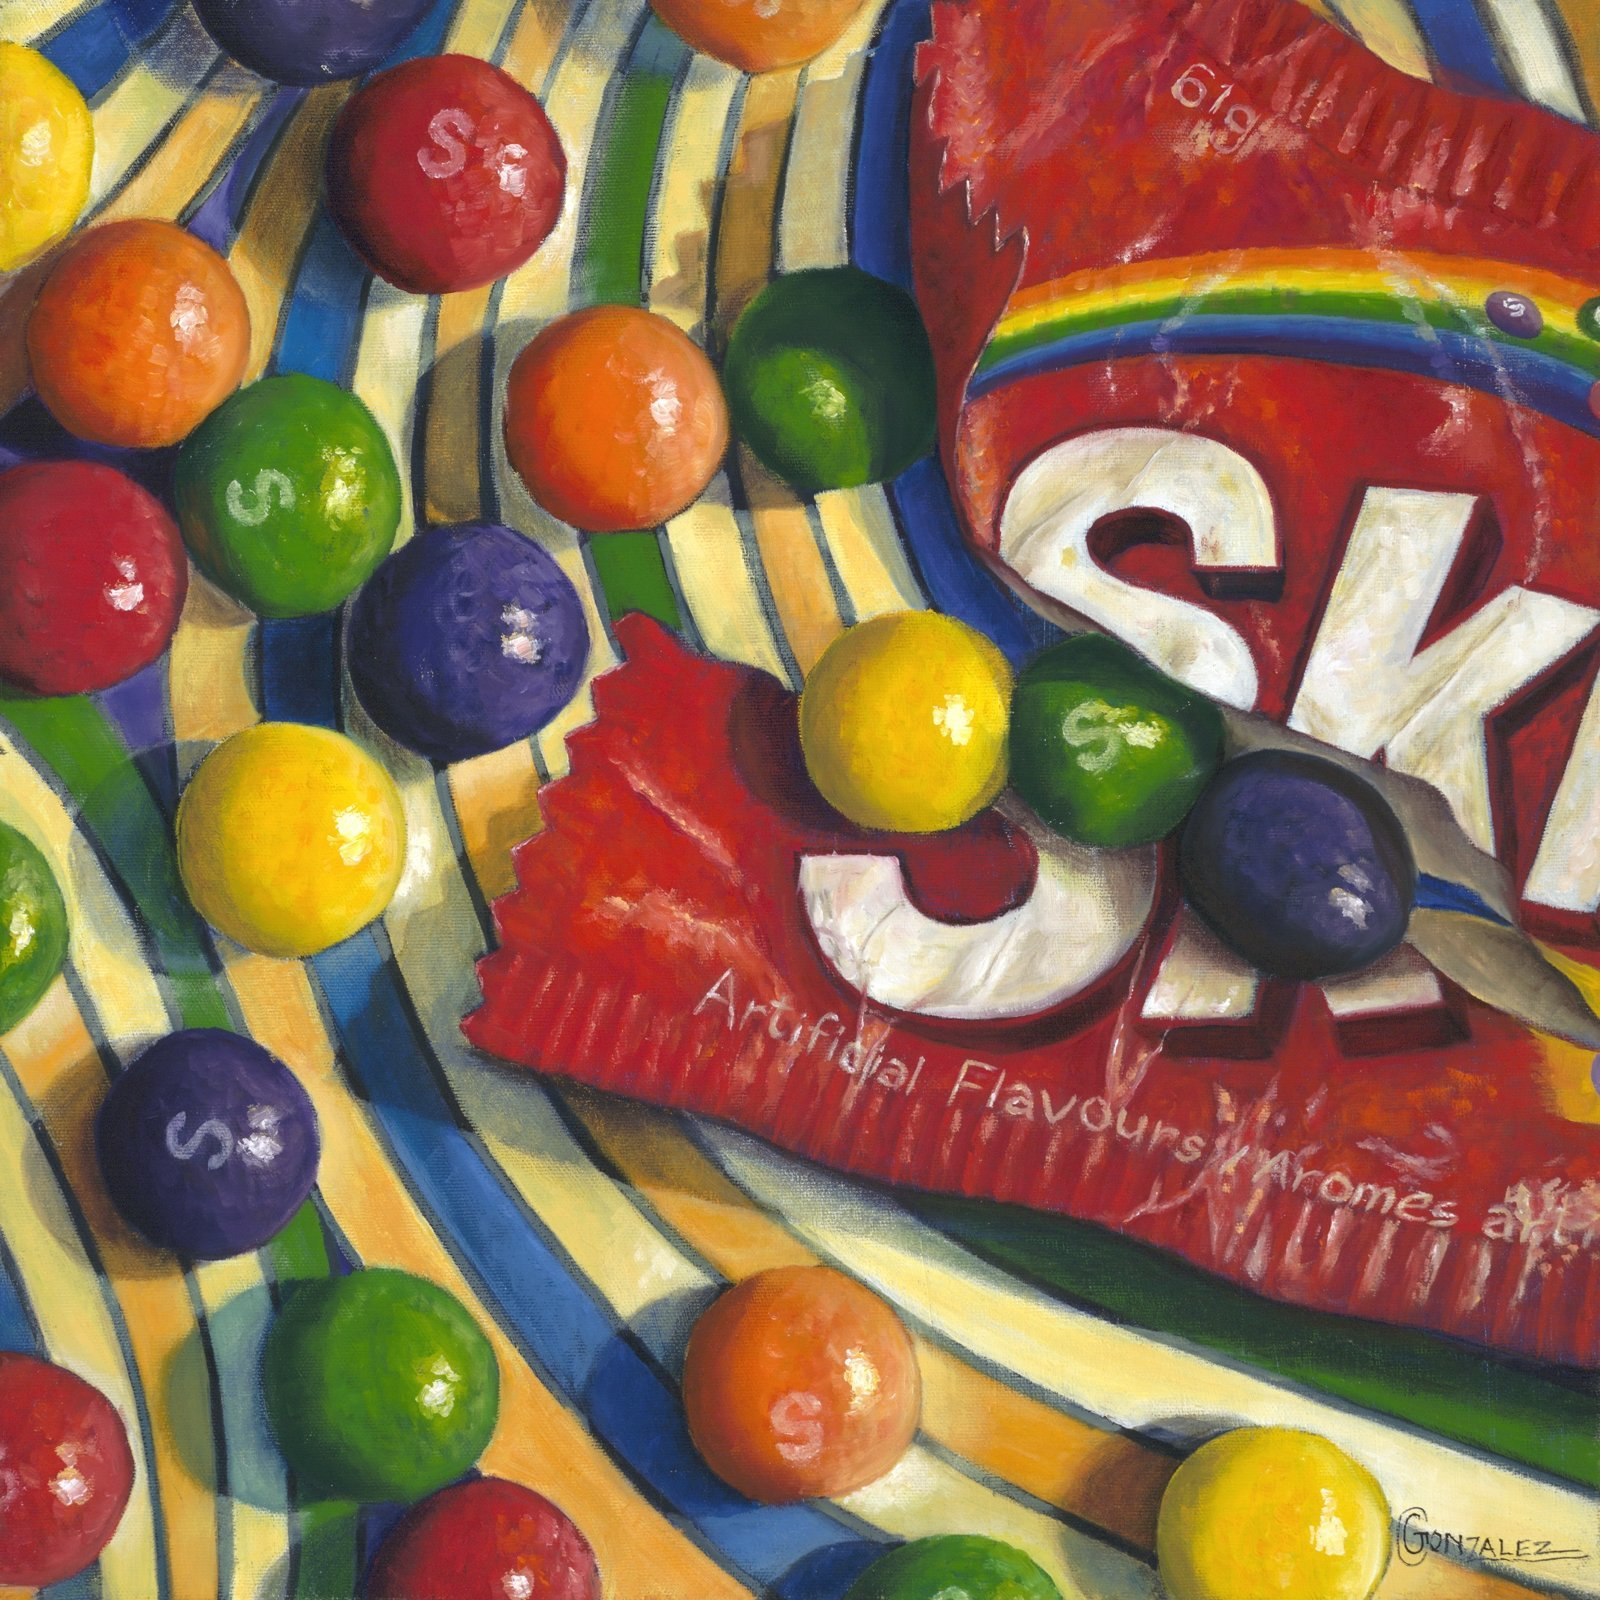 Carmen Gonzalez: 'skittles snack', 2012 Oil Painting, Food. Painted with oil on canvas.  My candies series paintings were inspired by childhood memories.  Every time I see certain candies, I am reminded of times as a child.  Candy has a way of luring us in with its bright colors, fun shapes, and addicting flavors.  It brings out the child ...